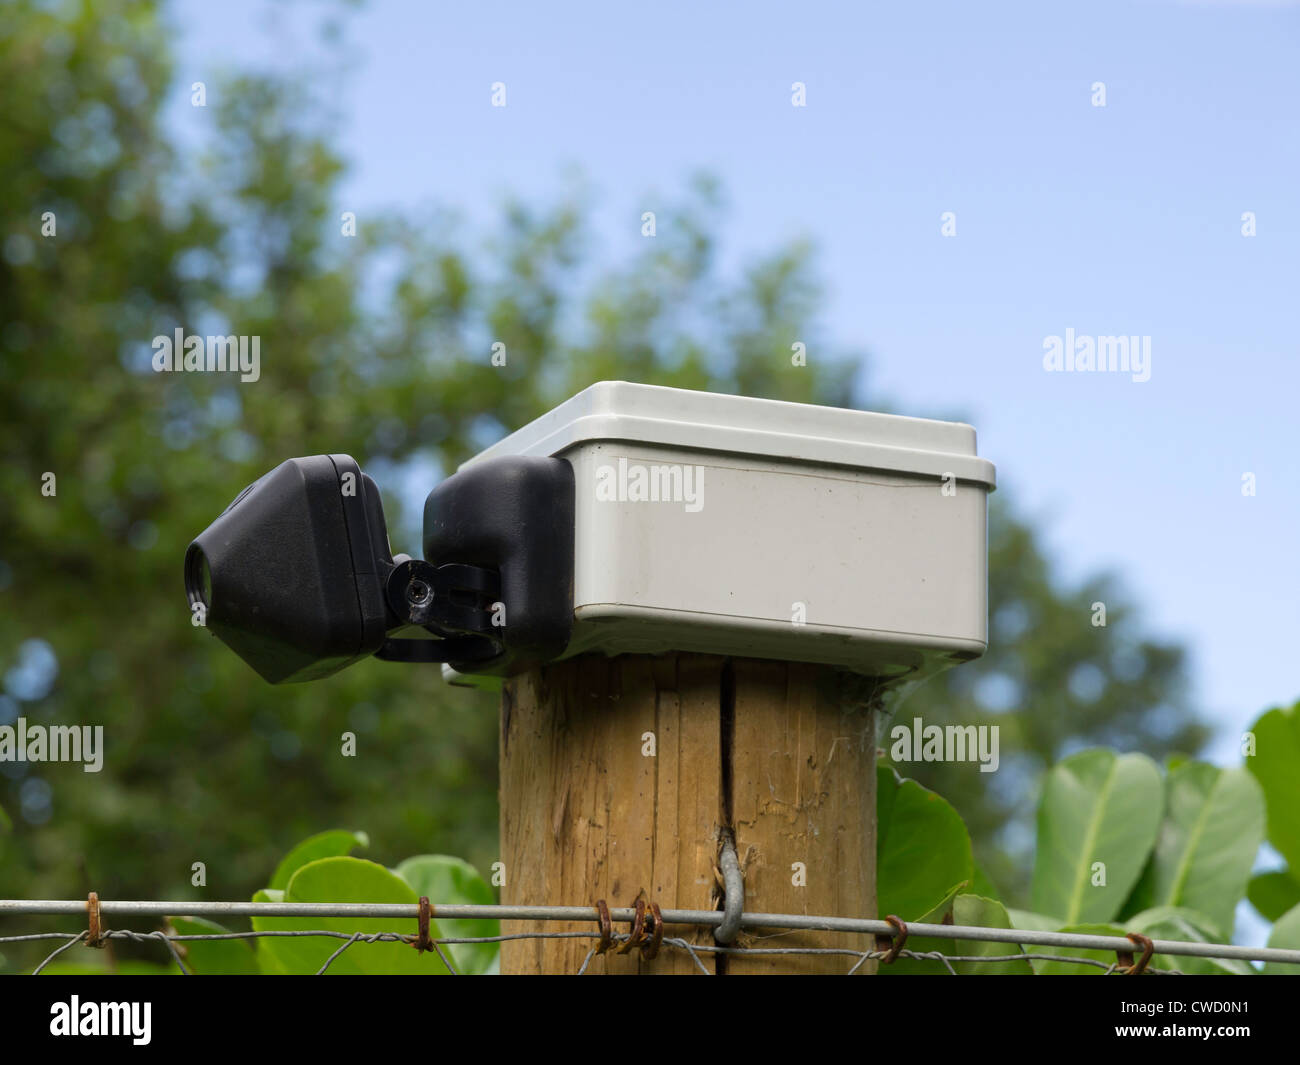 A small cctv security camera mounted on fence post in